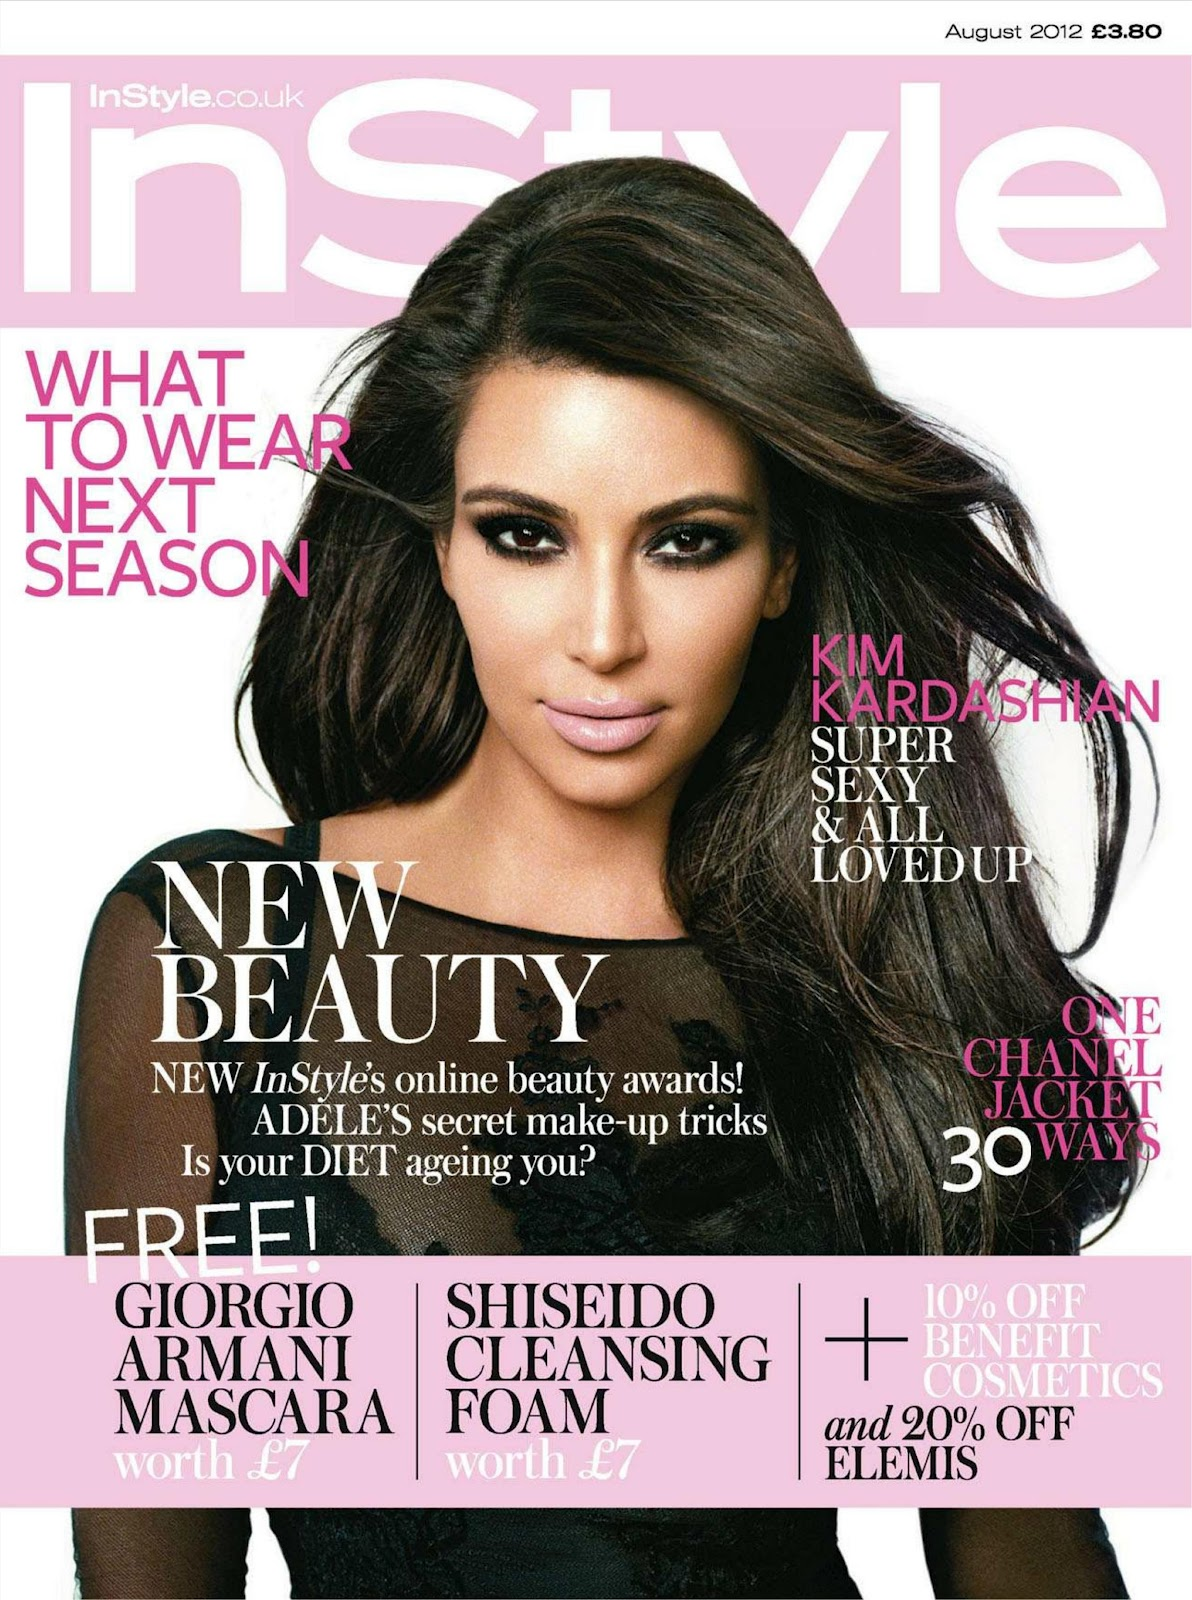 Instyle Magazine Us: Kim Kardashian - Covers InStyle UK August 2012